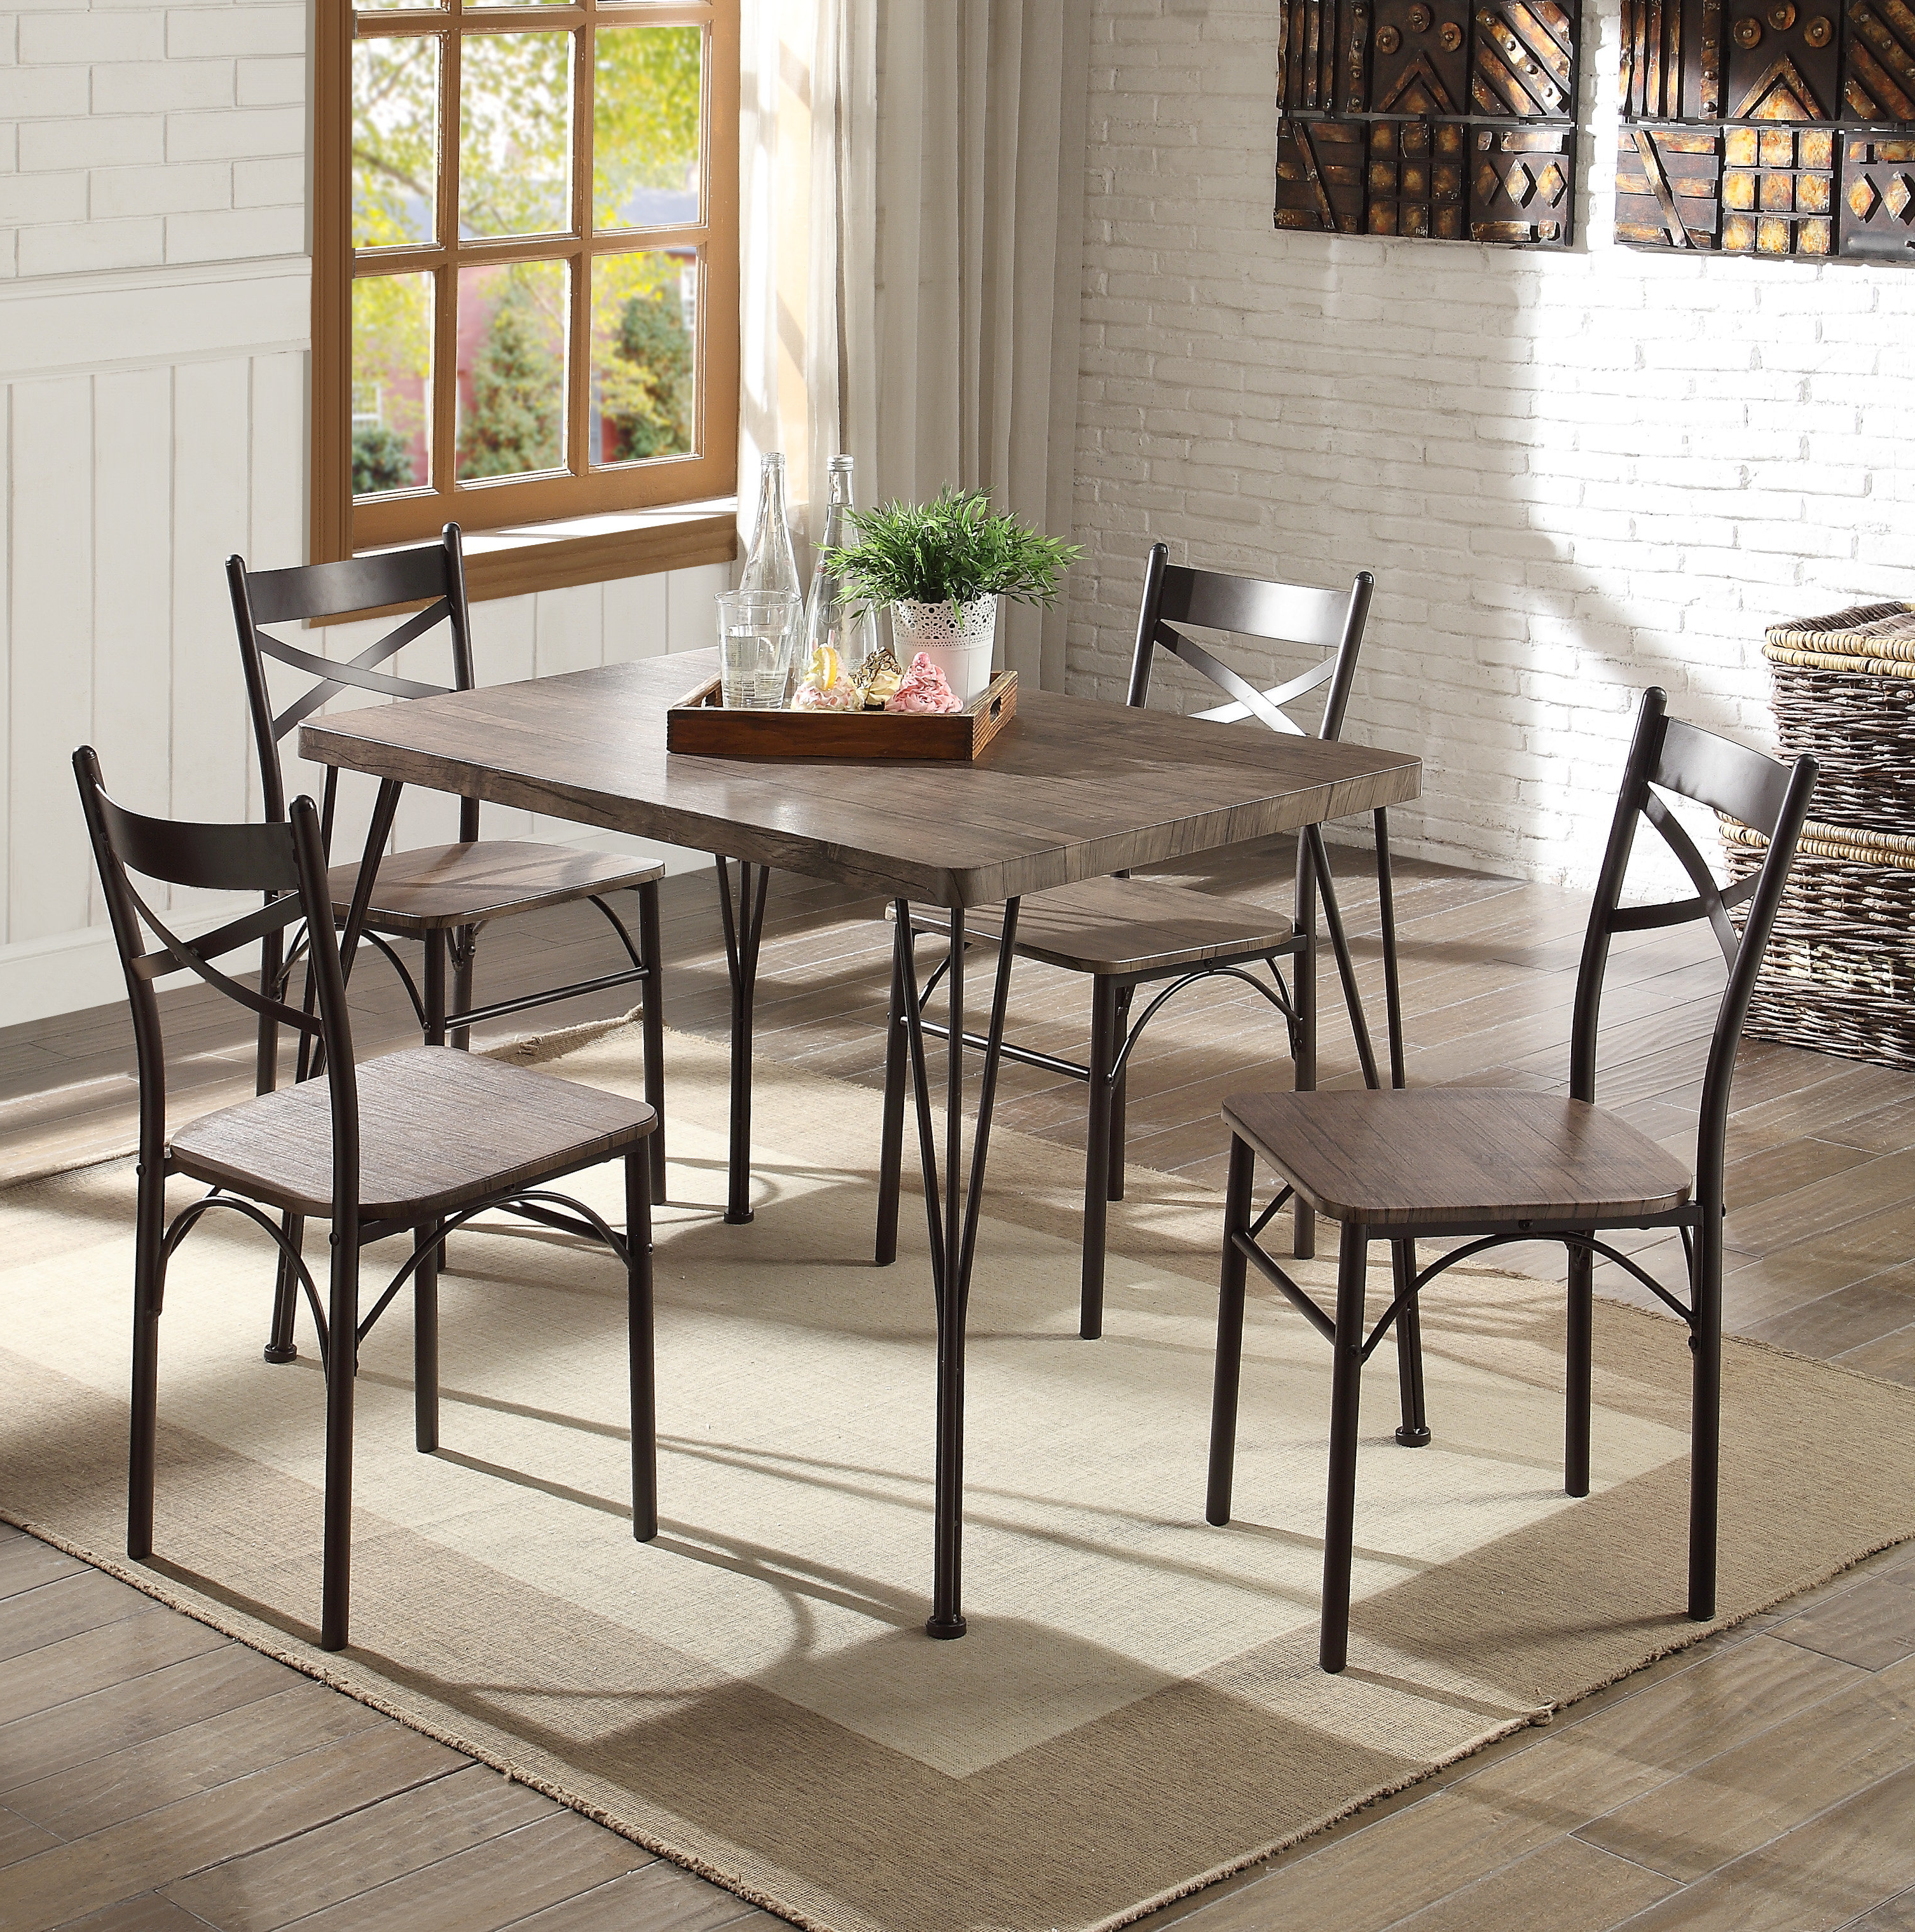 Widely Used Emmeline 5 Piece Breakfast Nook Dining Sets Throughout Andover Mills Middleport 5 Piece Dining Set & Reviews (View 11 of 25)